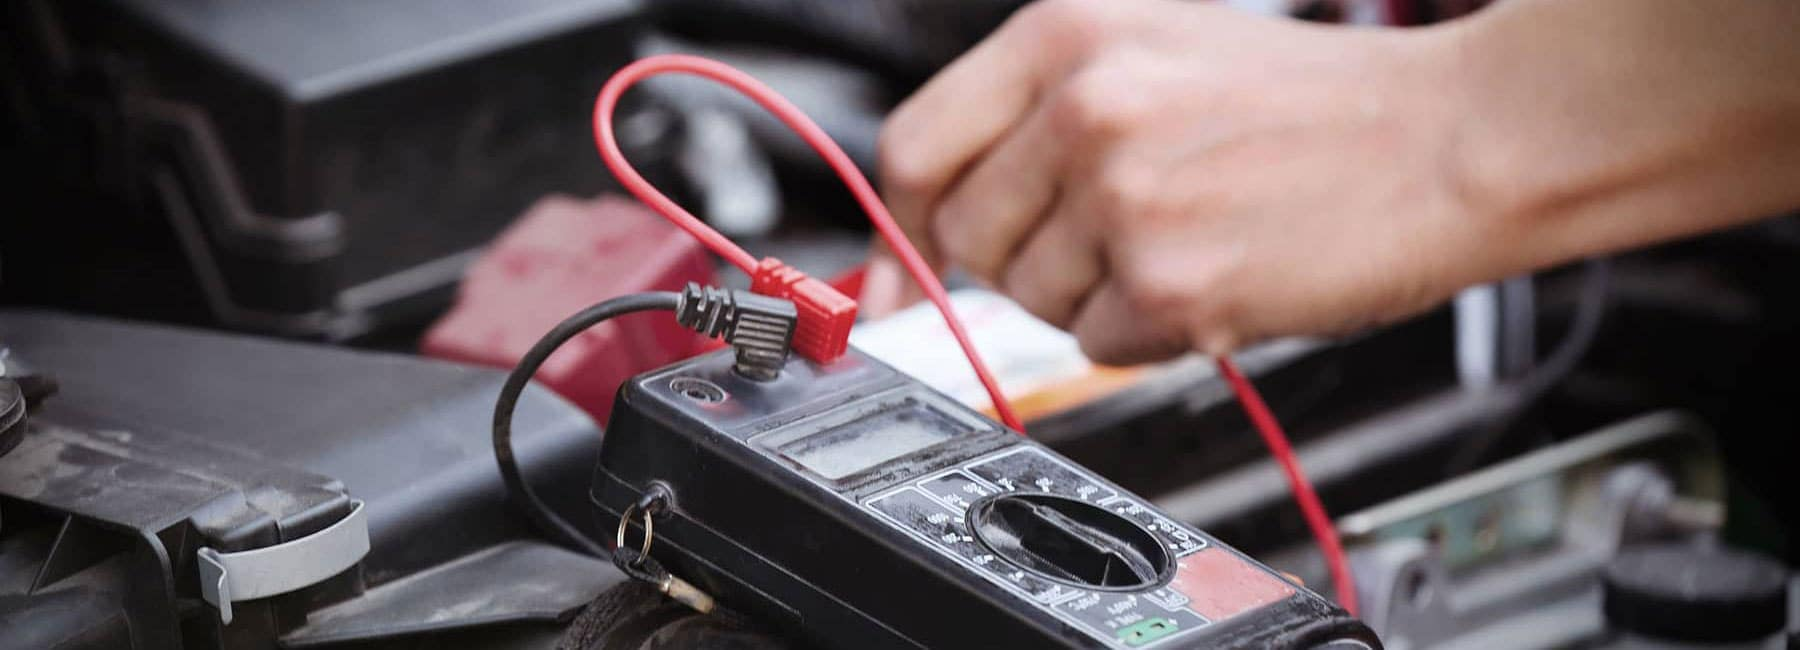 hight resolution of car battery care